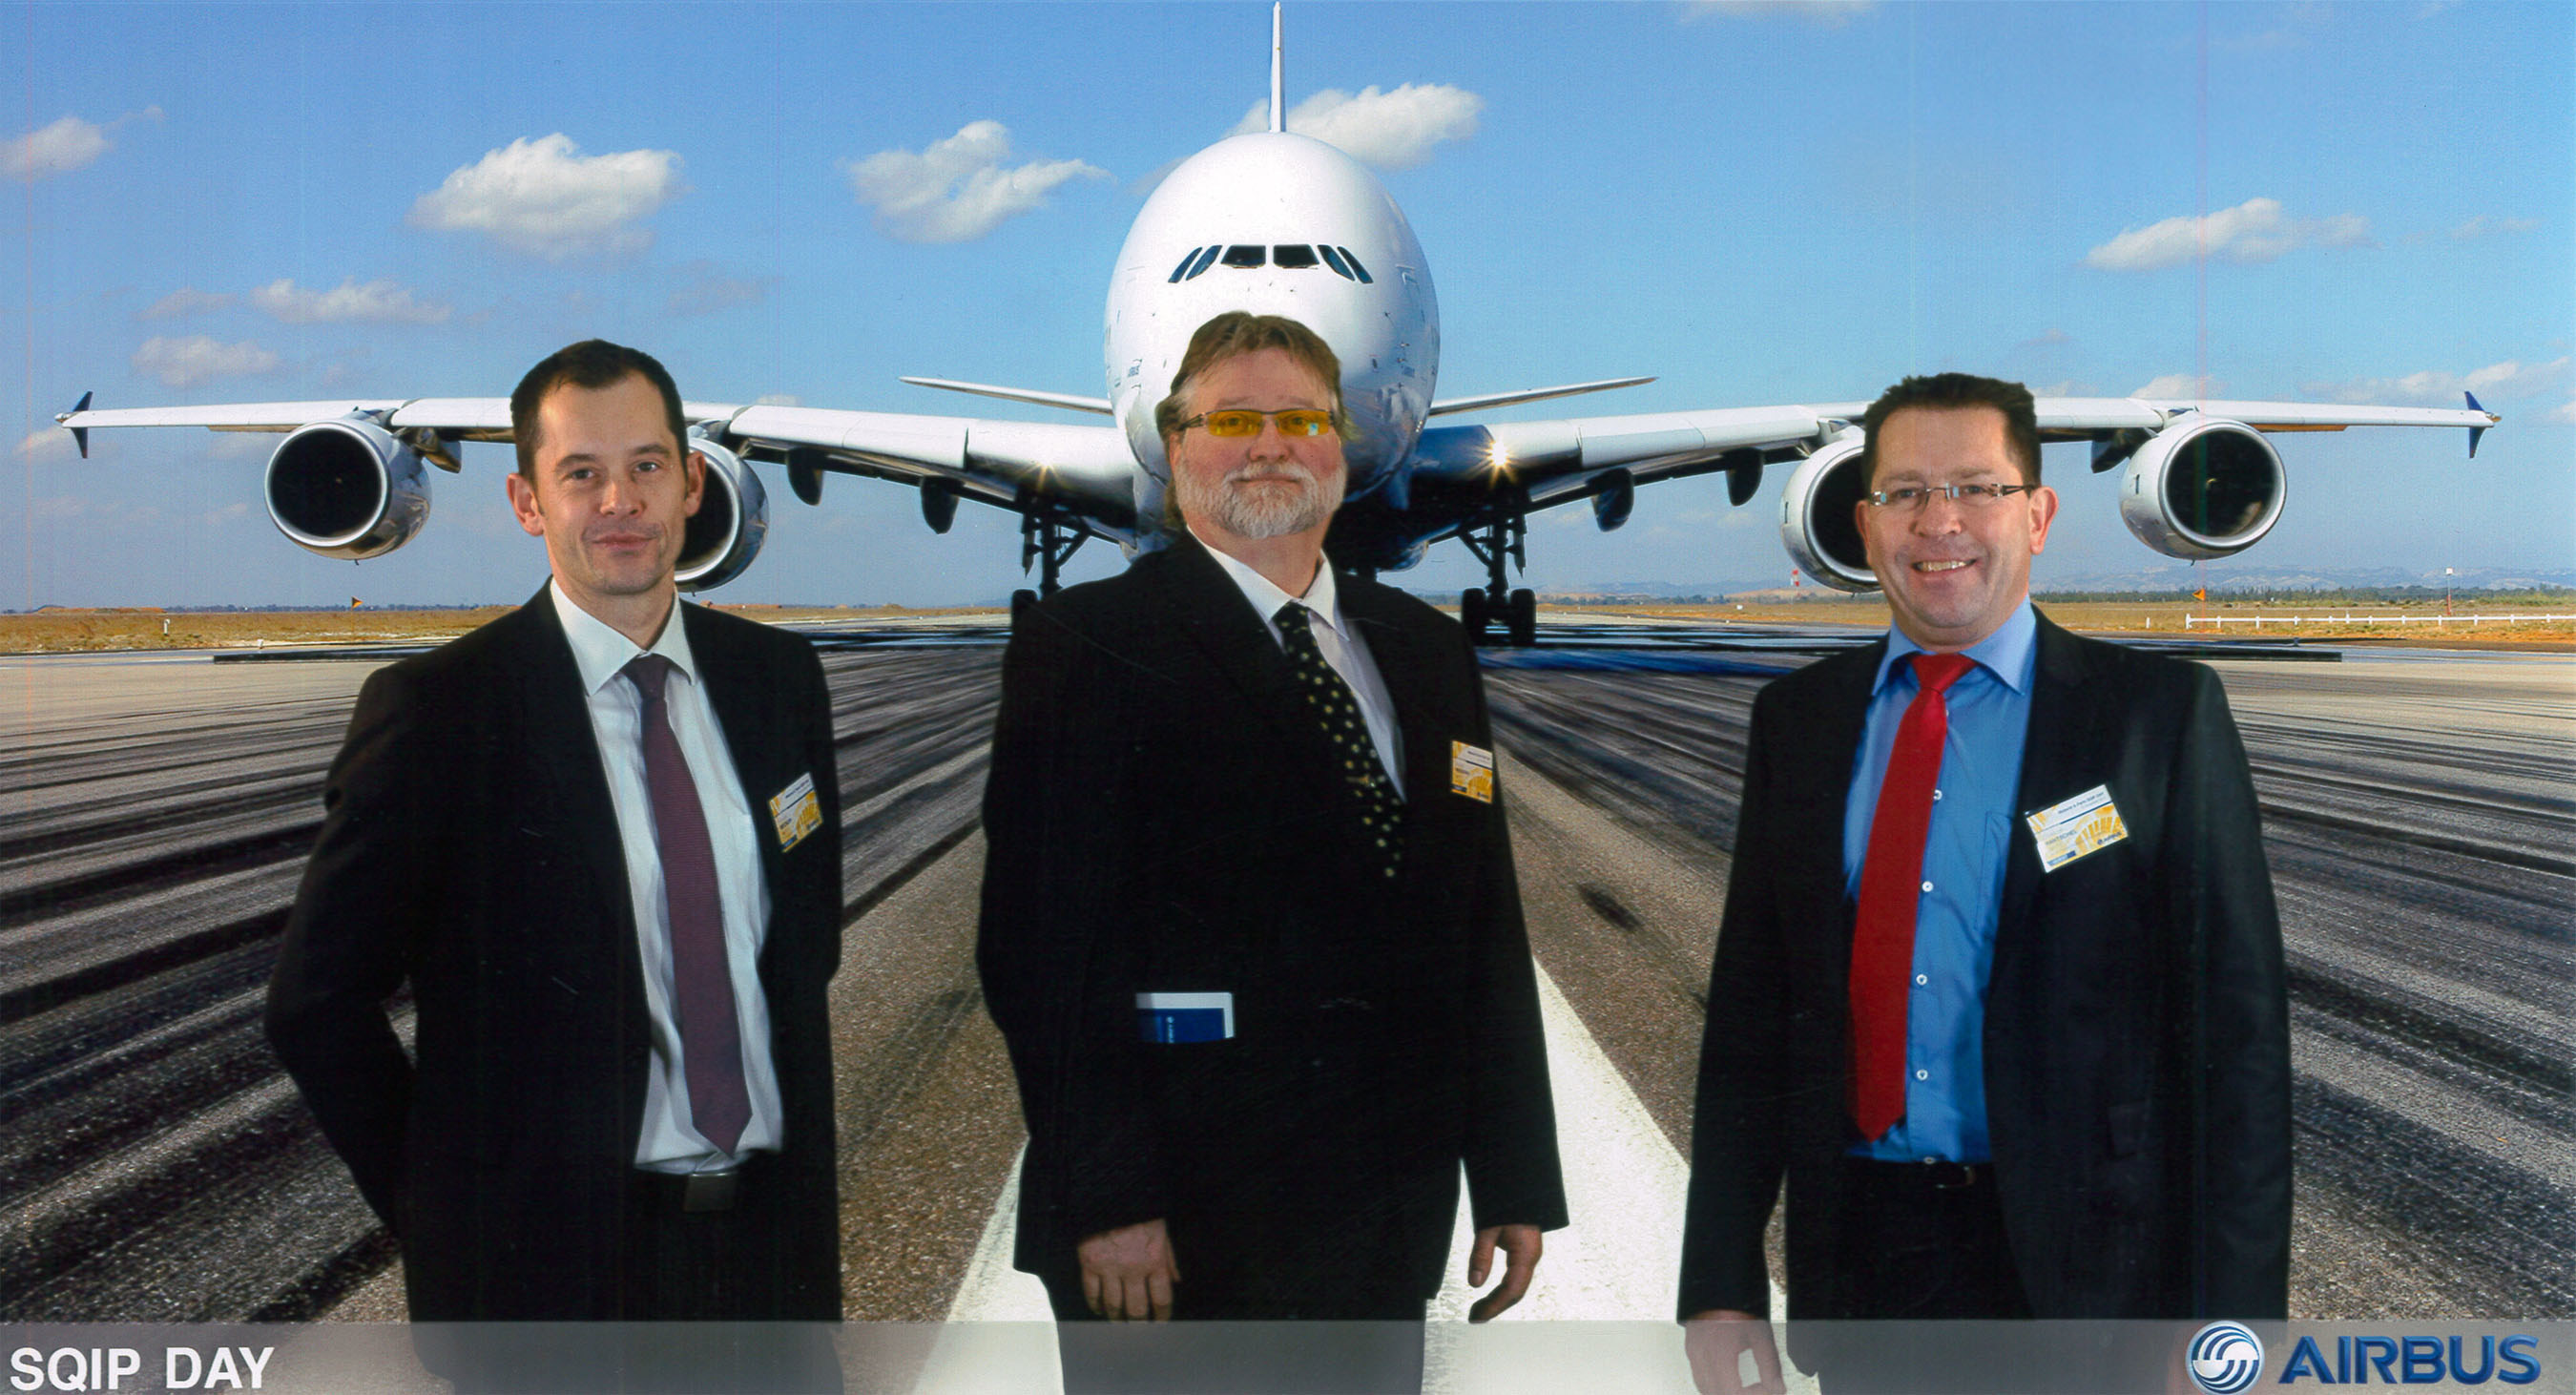 """Chemetall has been awarded the highest supplier honor in the Airbus """"Materials & Parts SQIP"""" program. From left to right: Hendrik Becker, Global Segment Manager Aerospace; Ronald Hendriks, Quality Manager EMEA, Airbus SQIP Coordinator; Christoph Hantschel, Global Product Manager Aircraft Sealants. (c) Airbus S.A.S,  Mit freundlicher Genehmigung von Airbus"""